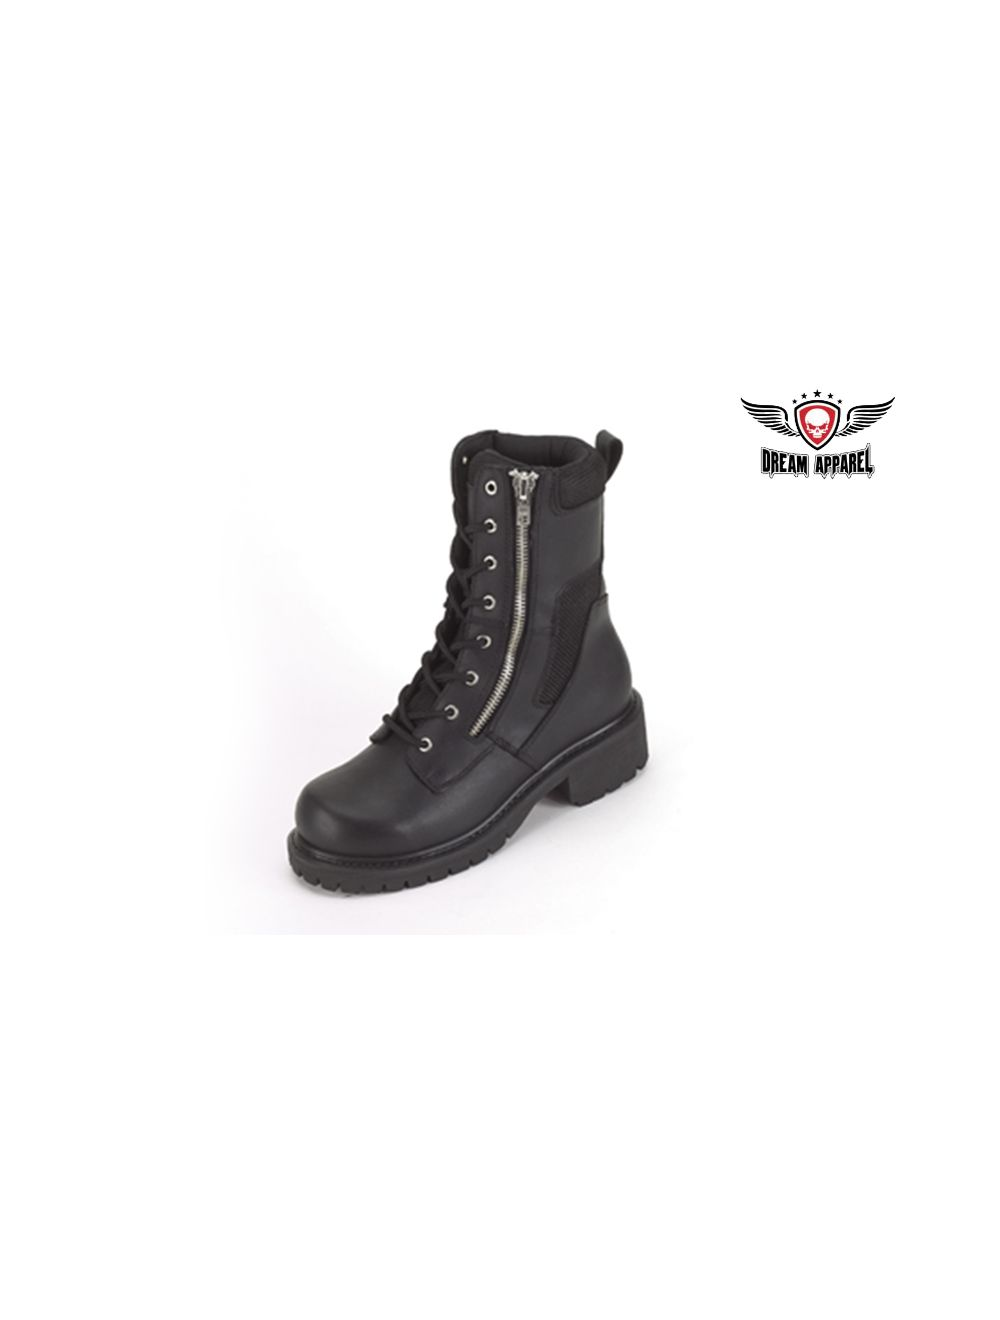 Men's Biker Boot with Lace Up Front and